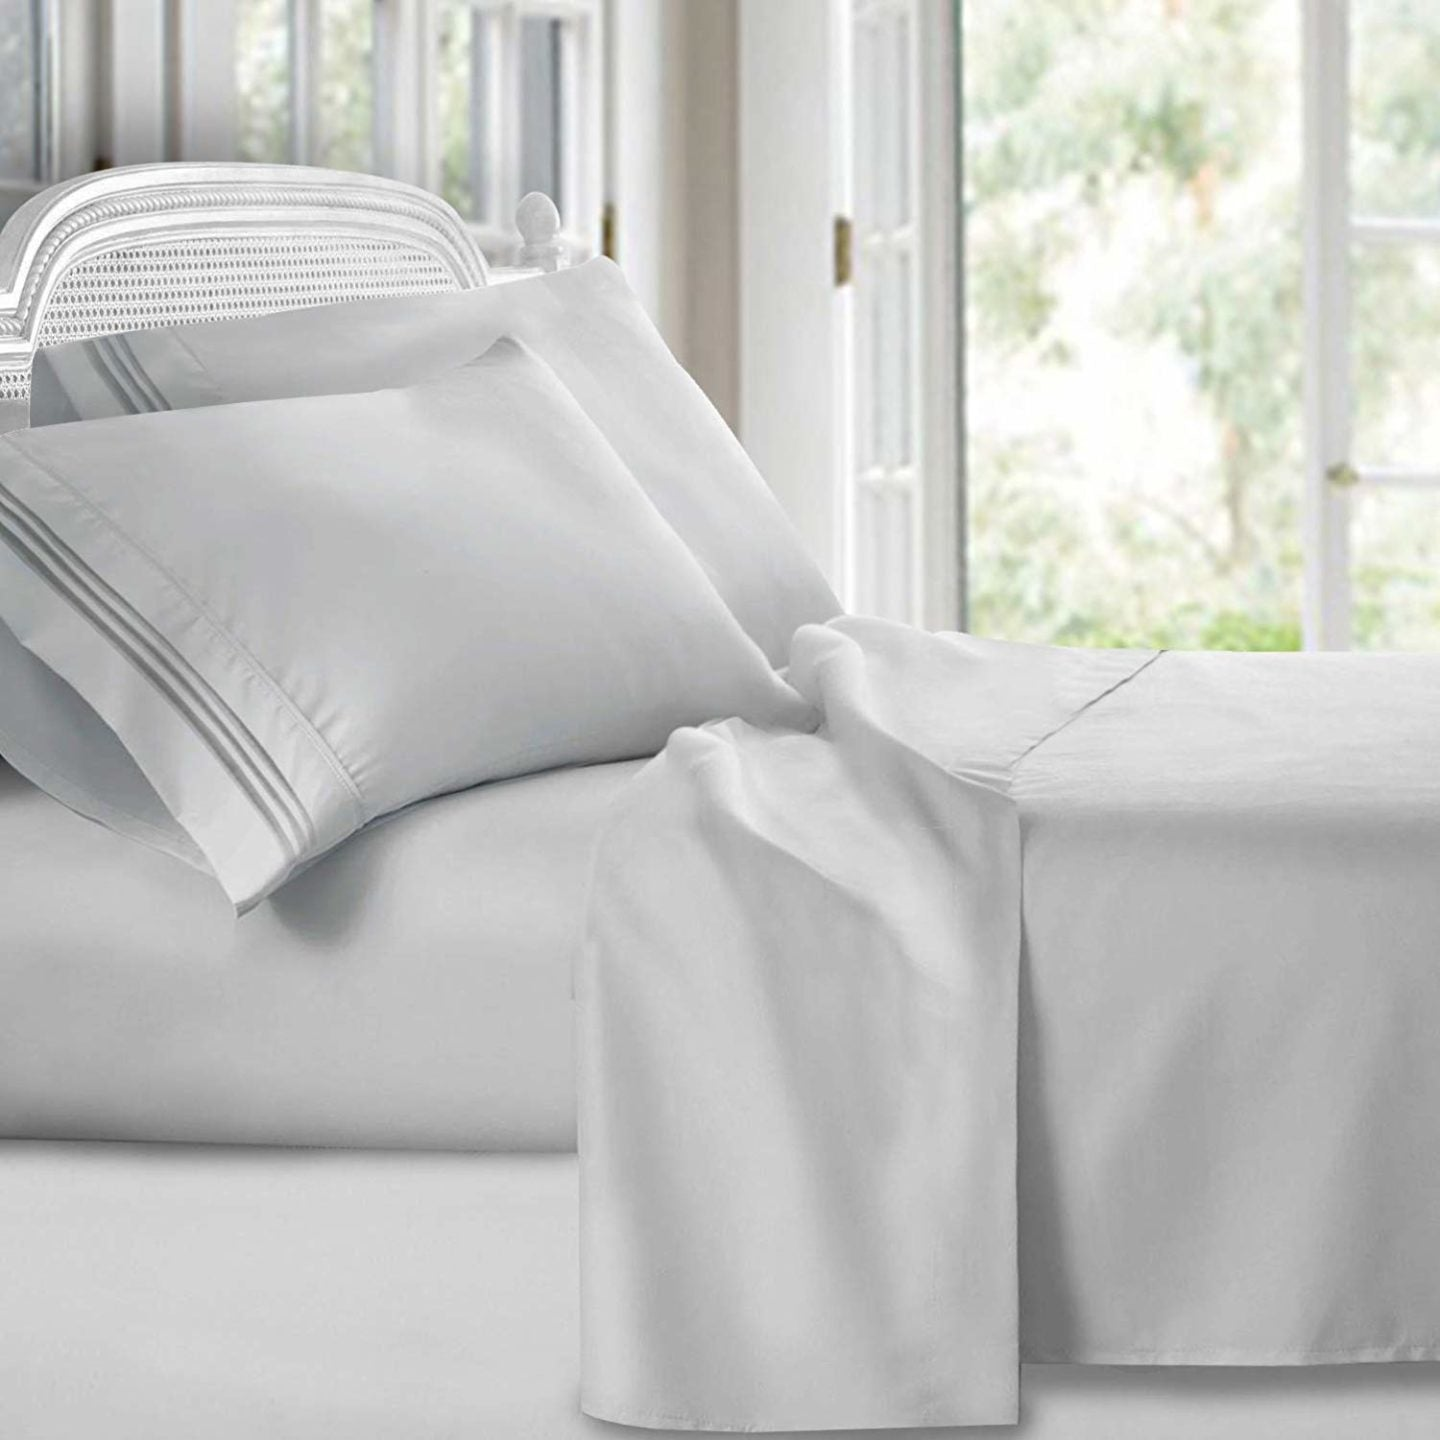 Mademoiselle Home | Beauty Sleep | Luxe Bed Sheet Set 1800 Series